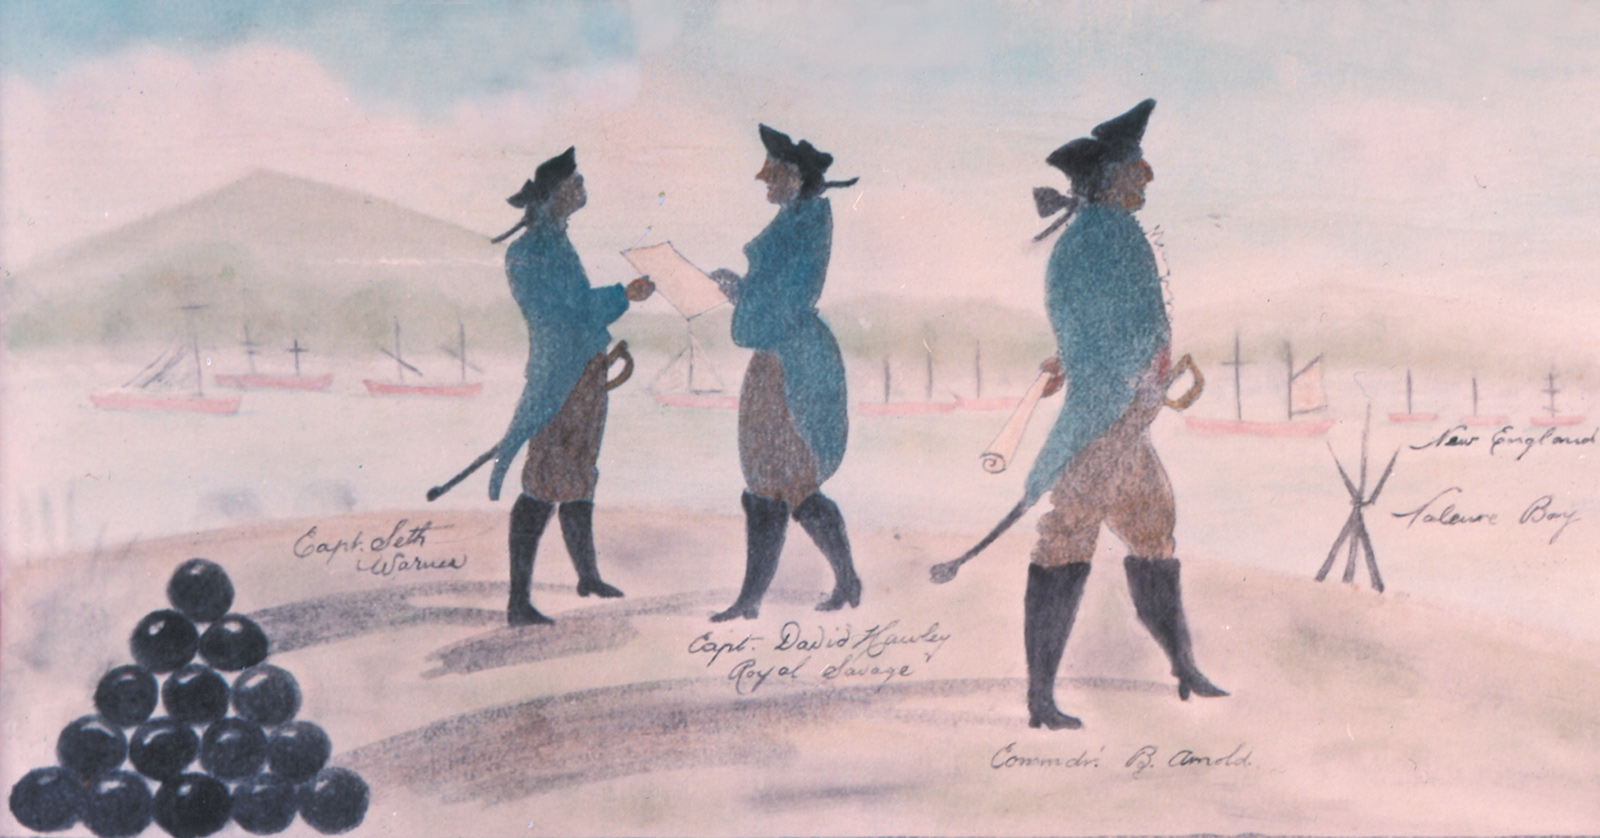 Benedict Arnold (right) and other American officers at the Battle of Valcour Island, Lake Champlain, October 1776; detail of a drawing by Charles Randle, from Nathaniel Philbrick's Valiant Ambition